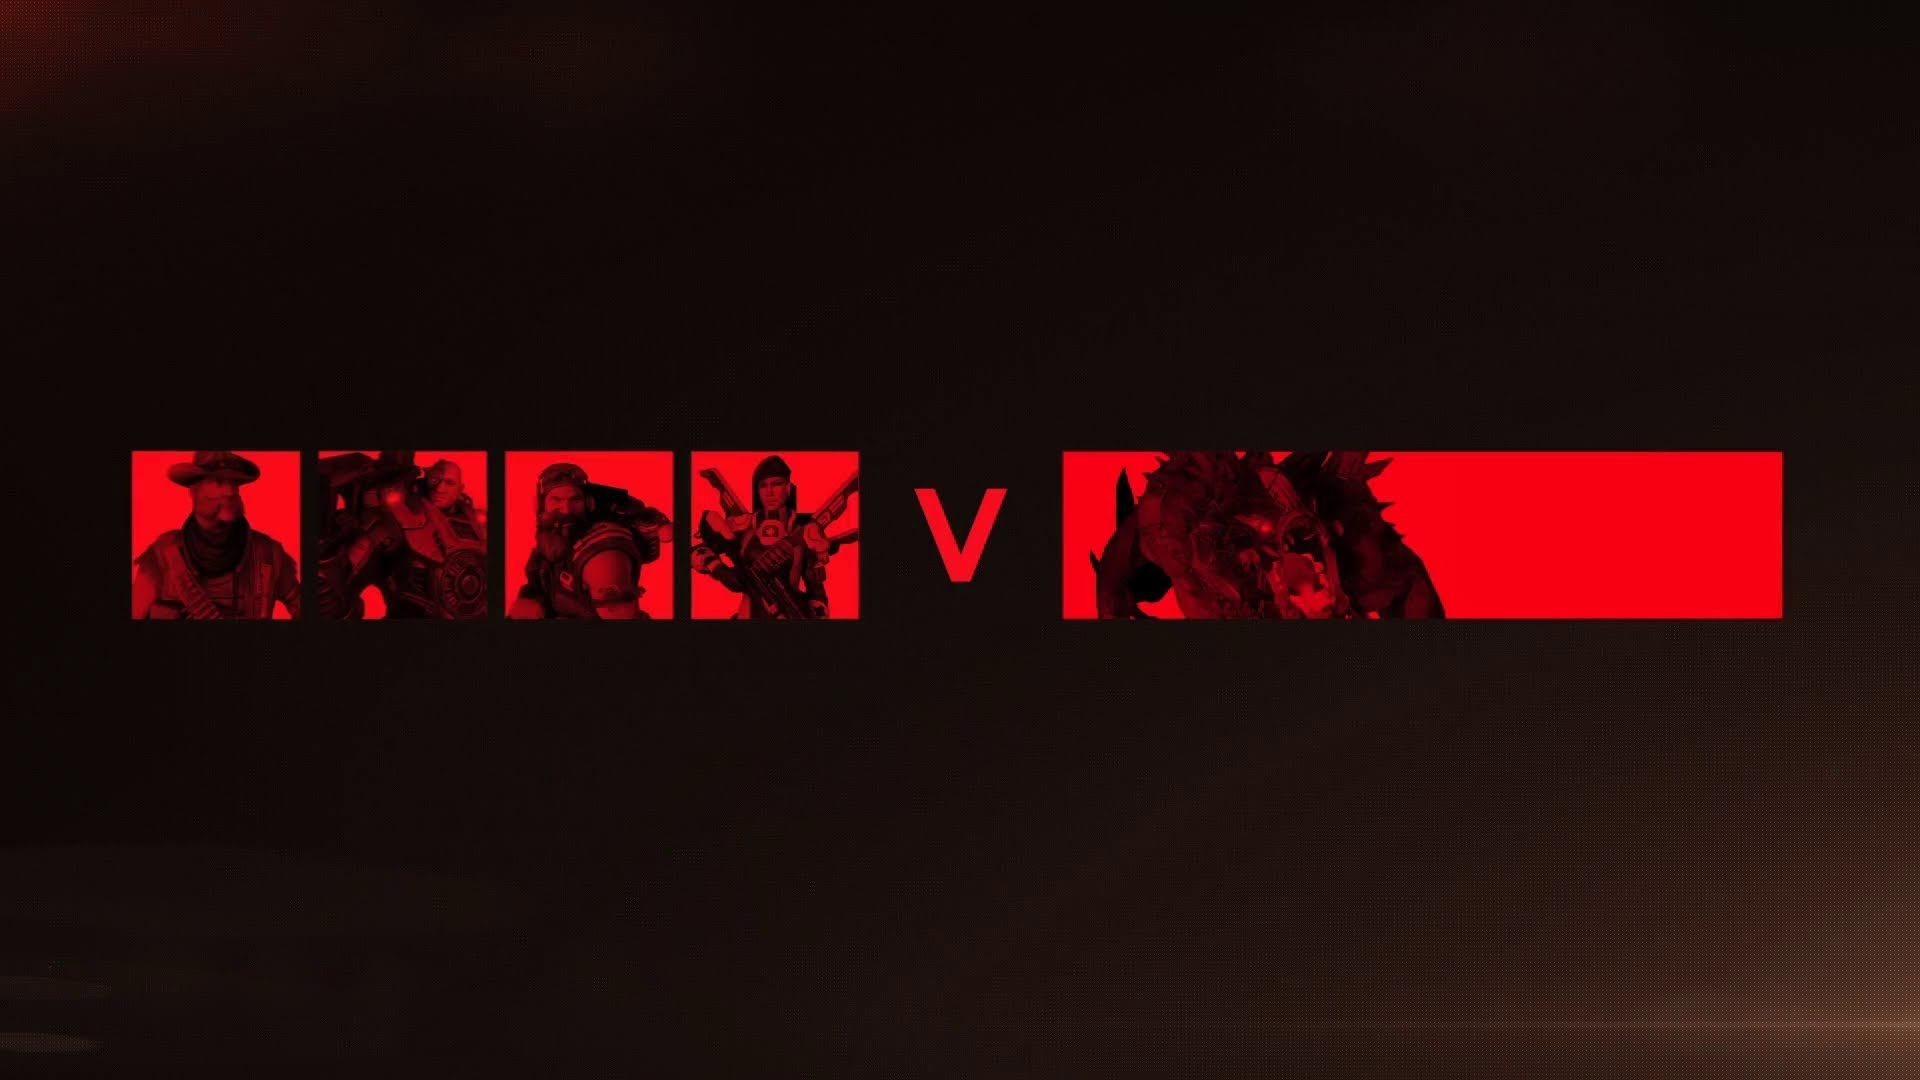 Evolve HD Wallpapers  Backgrounds  Wallpaper Page  1920x1080